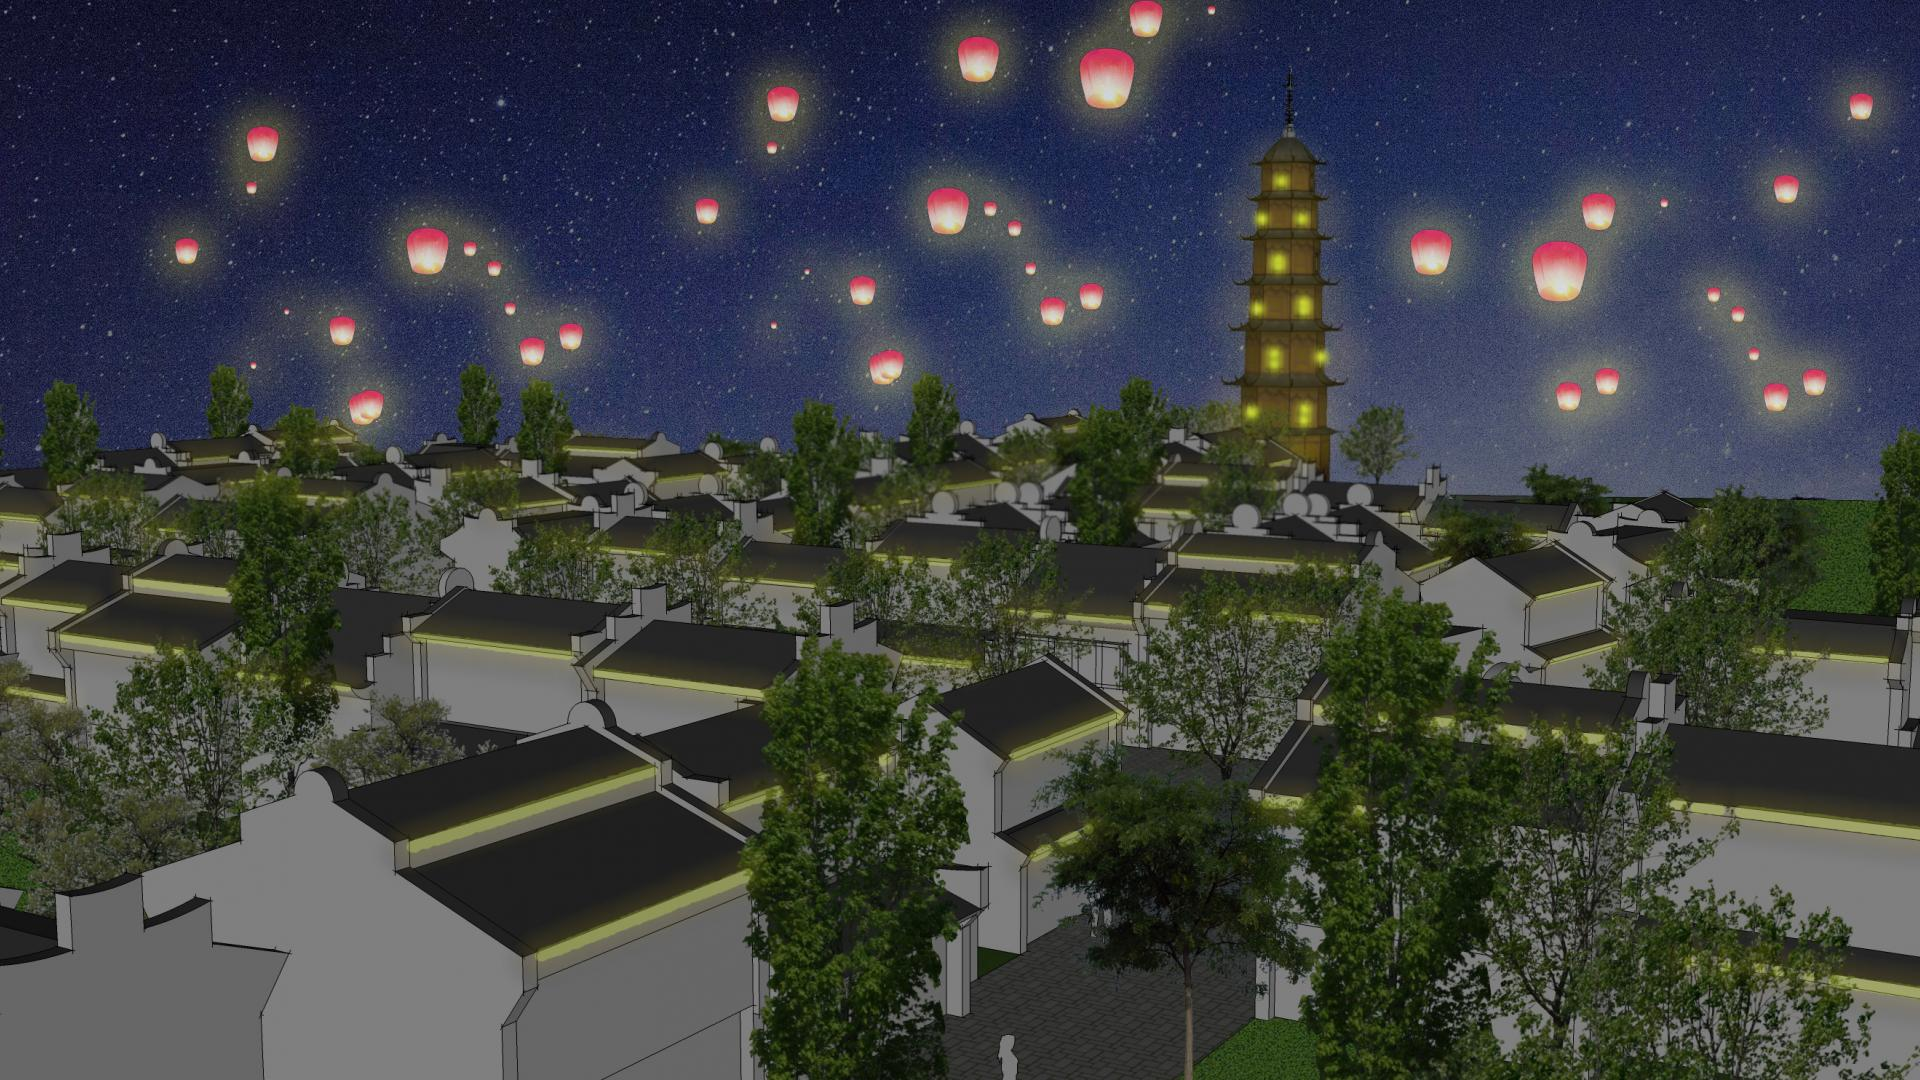 Lanterns floating in the sky above a suburban neighborhood.